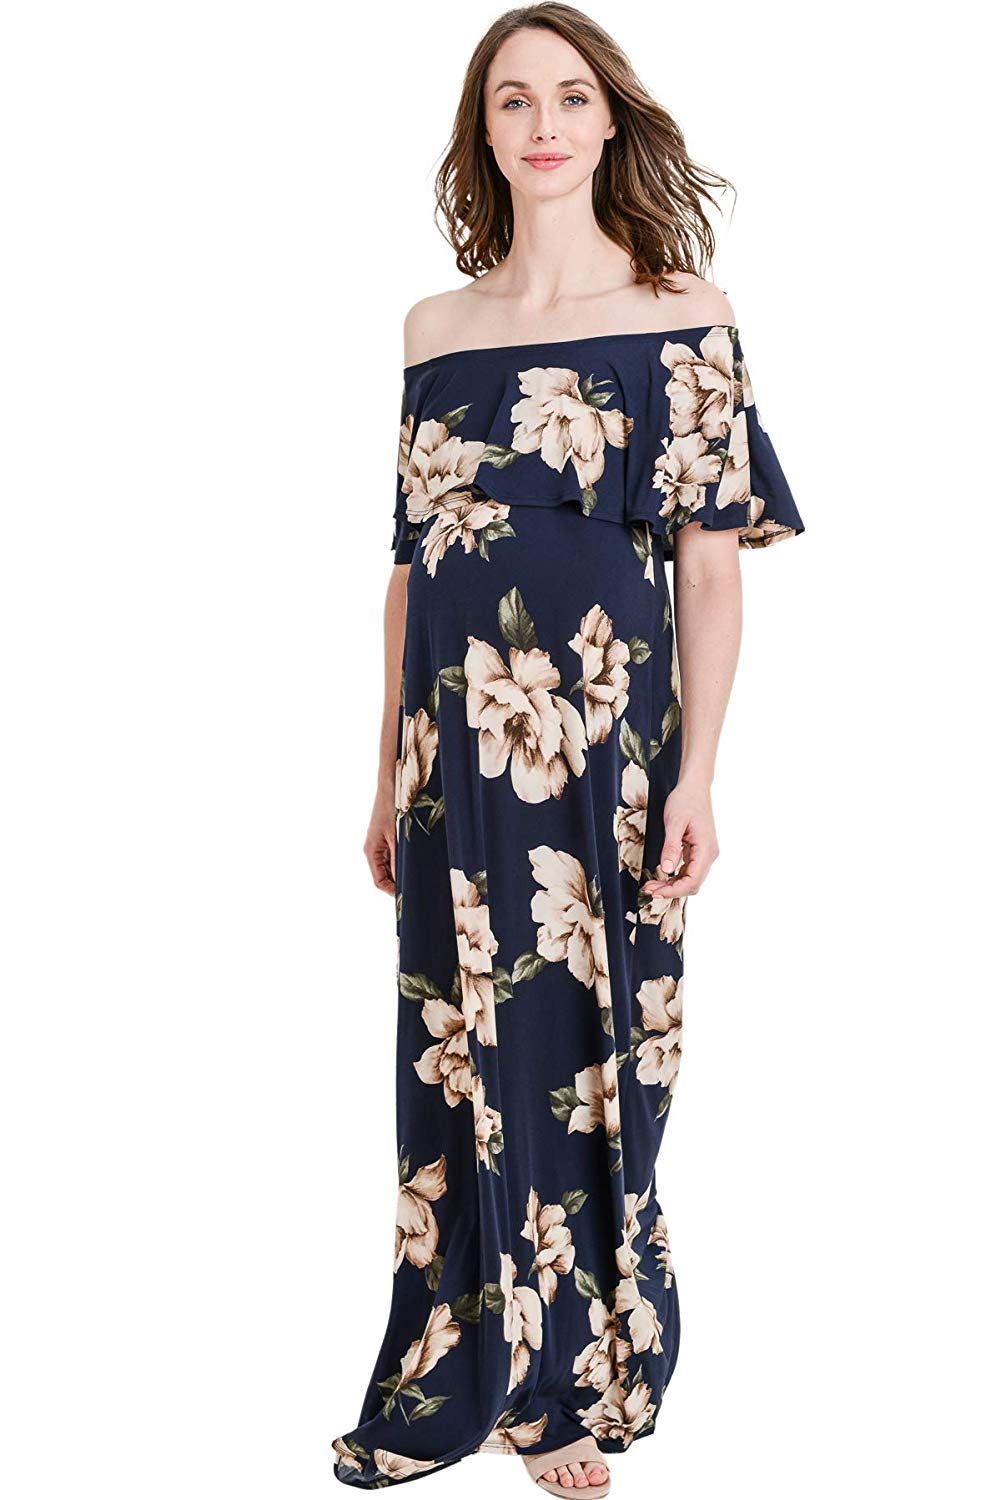 Navy Floral Maternity Maxi - Mommylicious